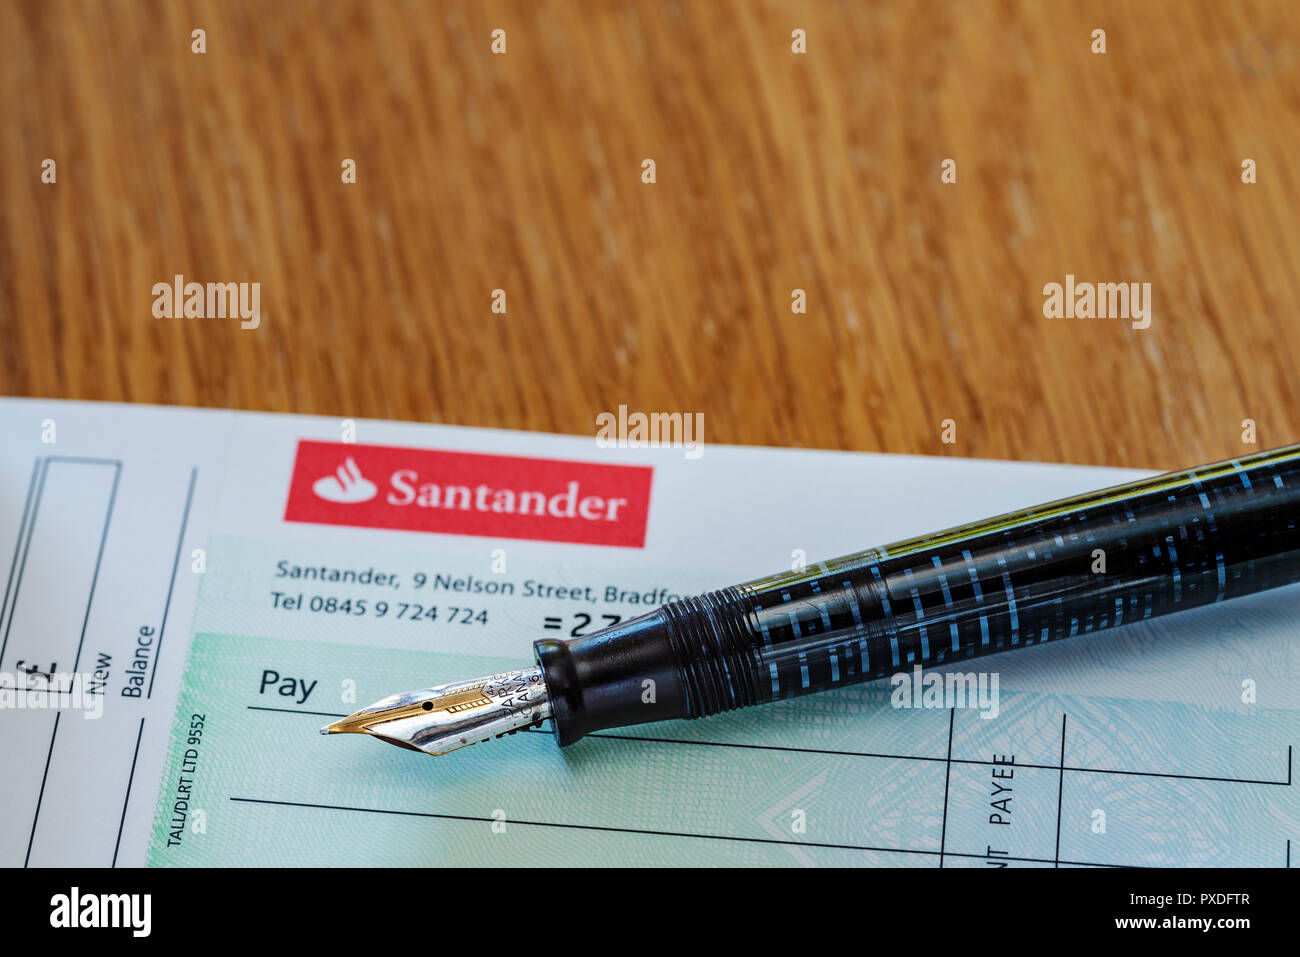 Santander cheque book and fountain pen. Retro or old school banking. Writing a check. - Stock Image